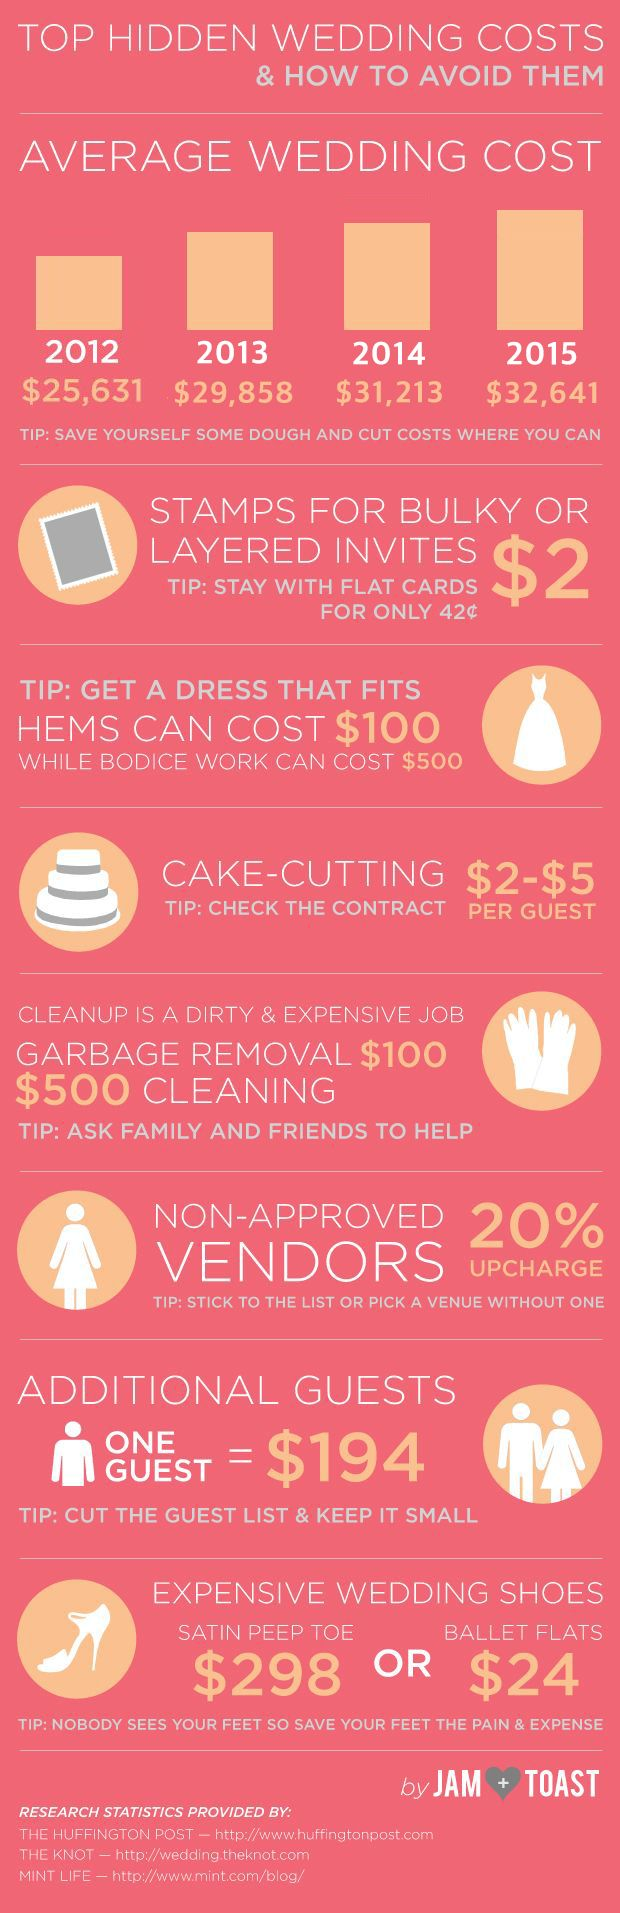 "Check out these super simple tips to avoid hidden costs that totally blow the wedding budget! Who knew? #Infographic from @WeddingMix   ""7 Top Hidden Wedding Costs and How to Avoid Them"""